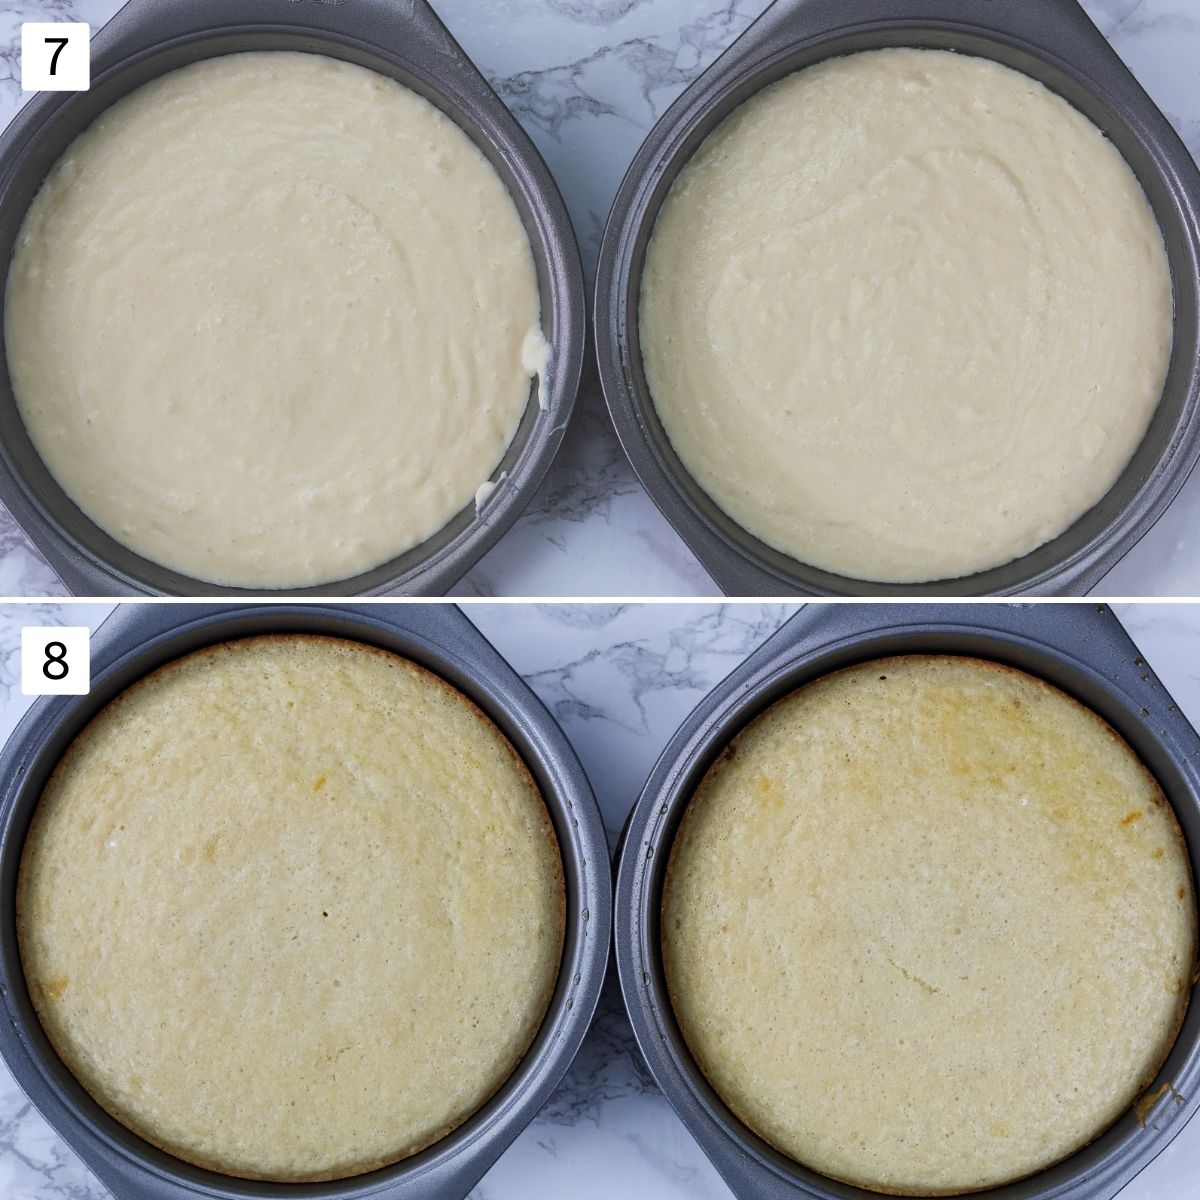 Collage of 2 steps showing cake batter in the pan and baked cakes.